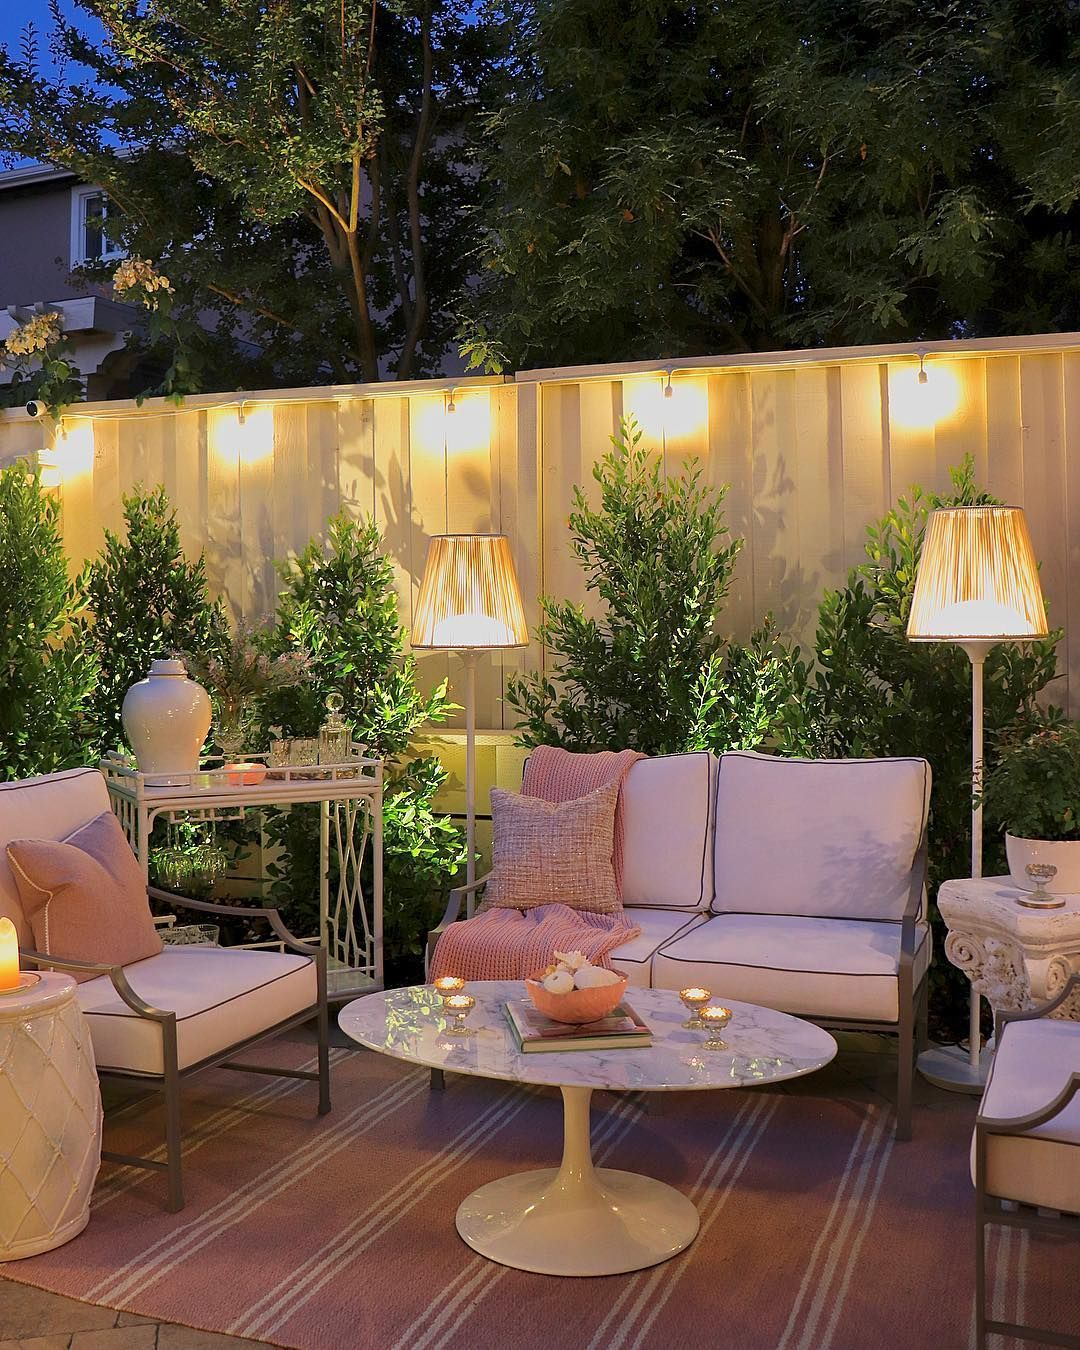 30 Diy Lighting Ideas At Night Yard Landscape With Outdoor Lights Gowritter Backyard Patio Designs Backyard Patio Backyard